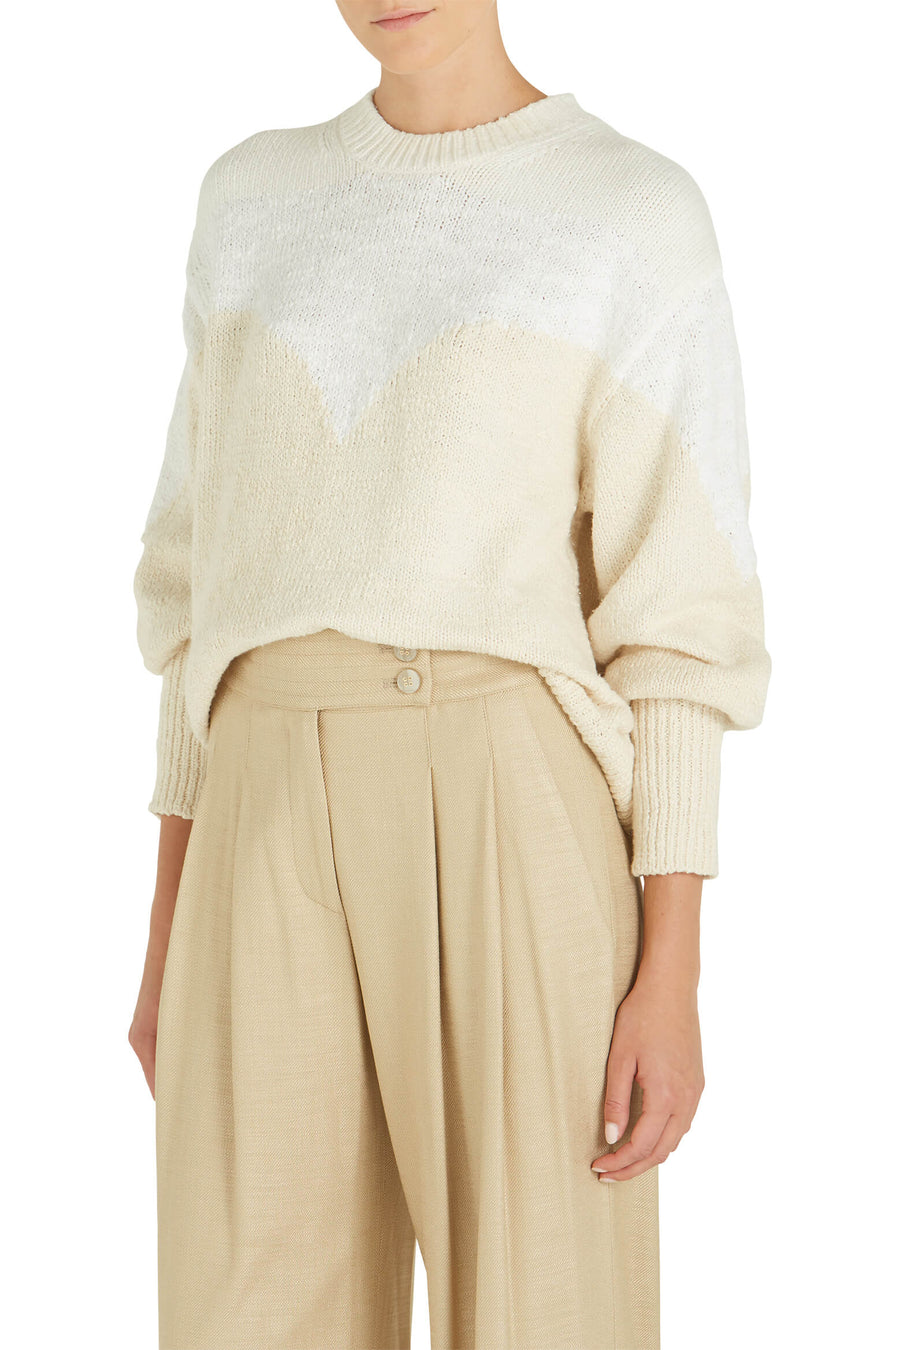 A.L.C. Avie Long Sleeve Knit Sweater Ivory/White/Natural from The New Trend